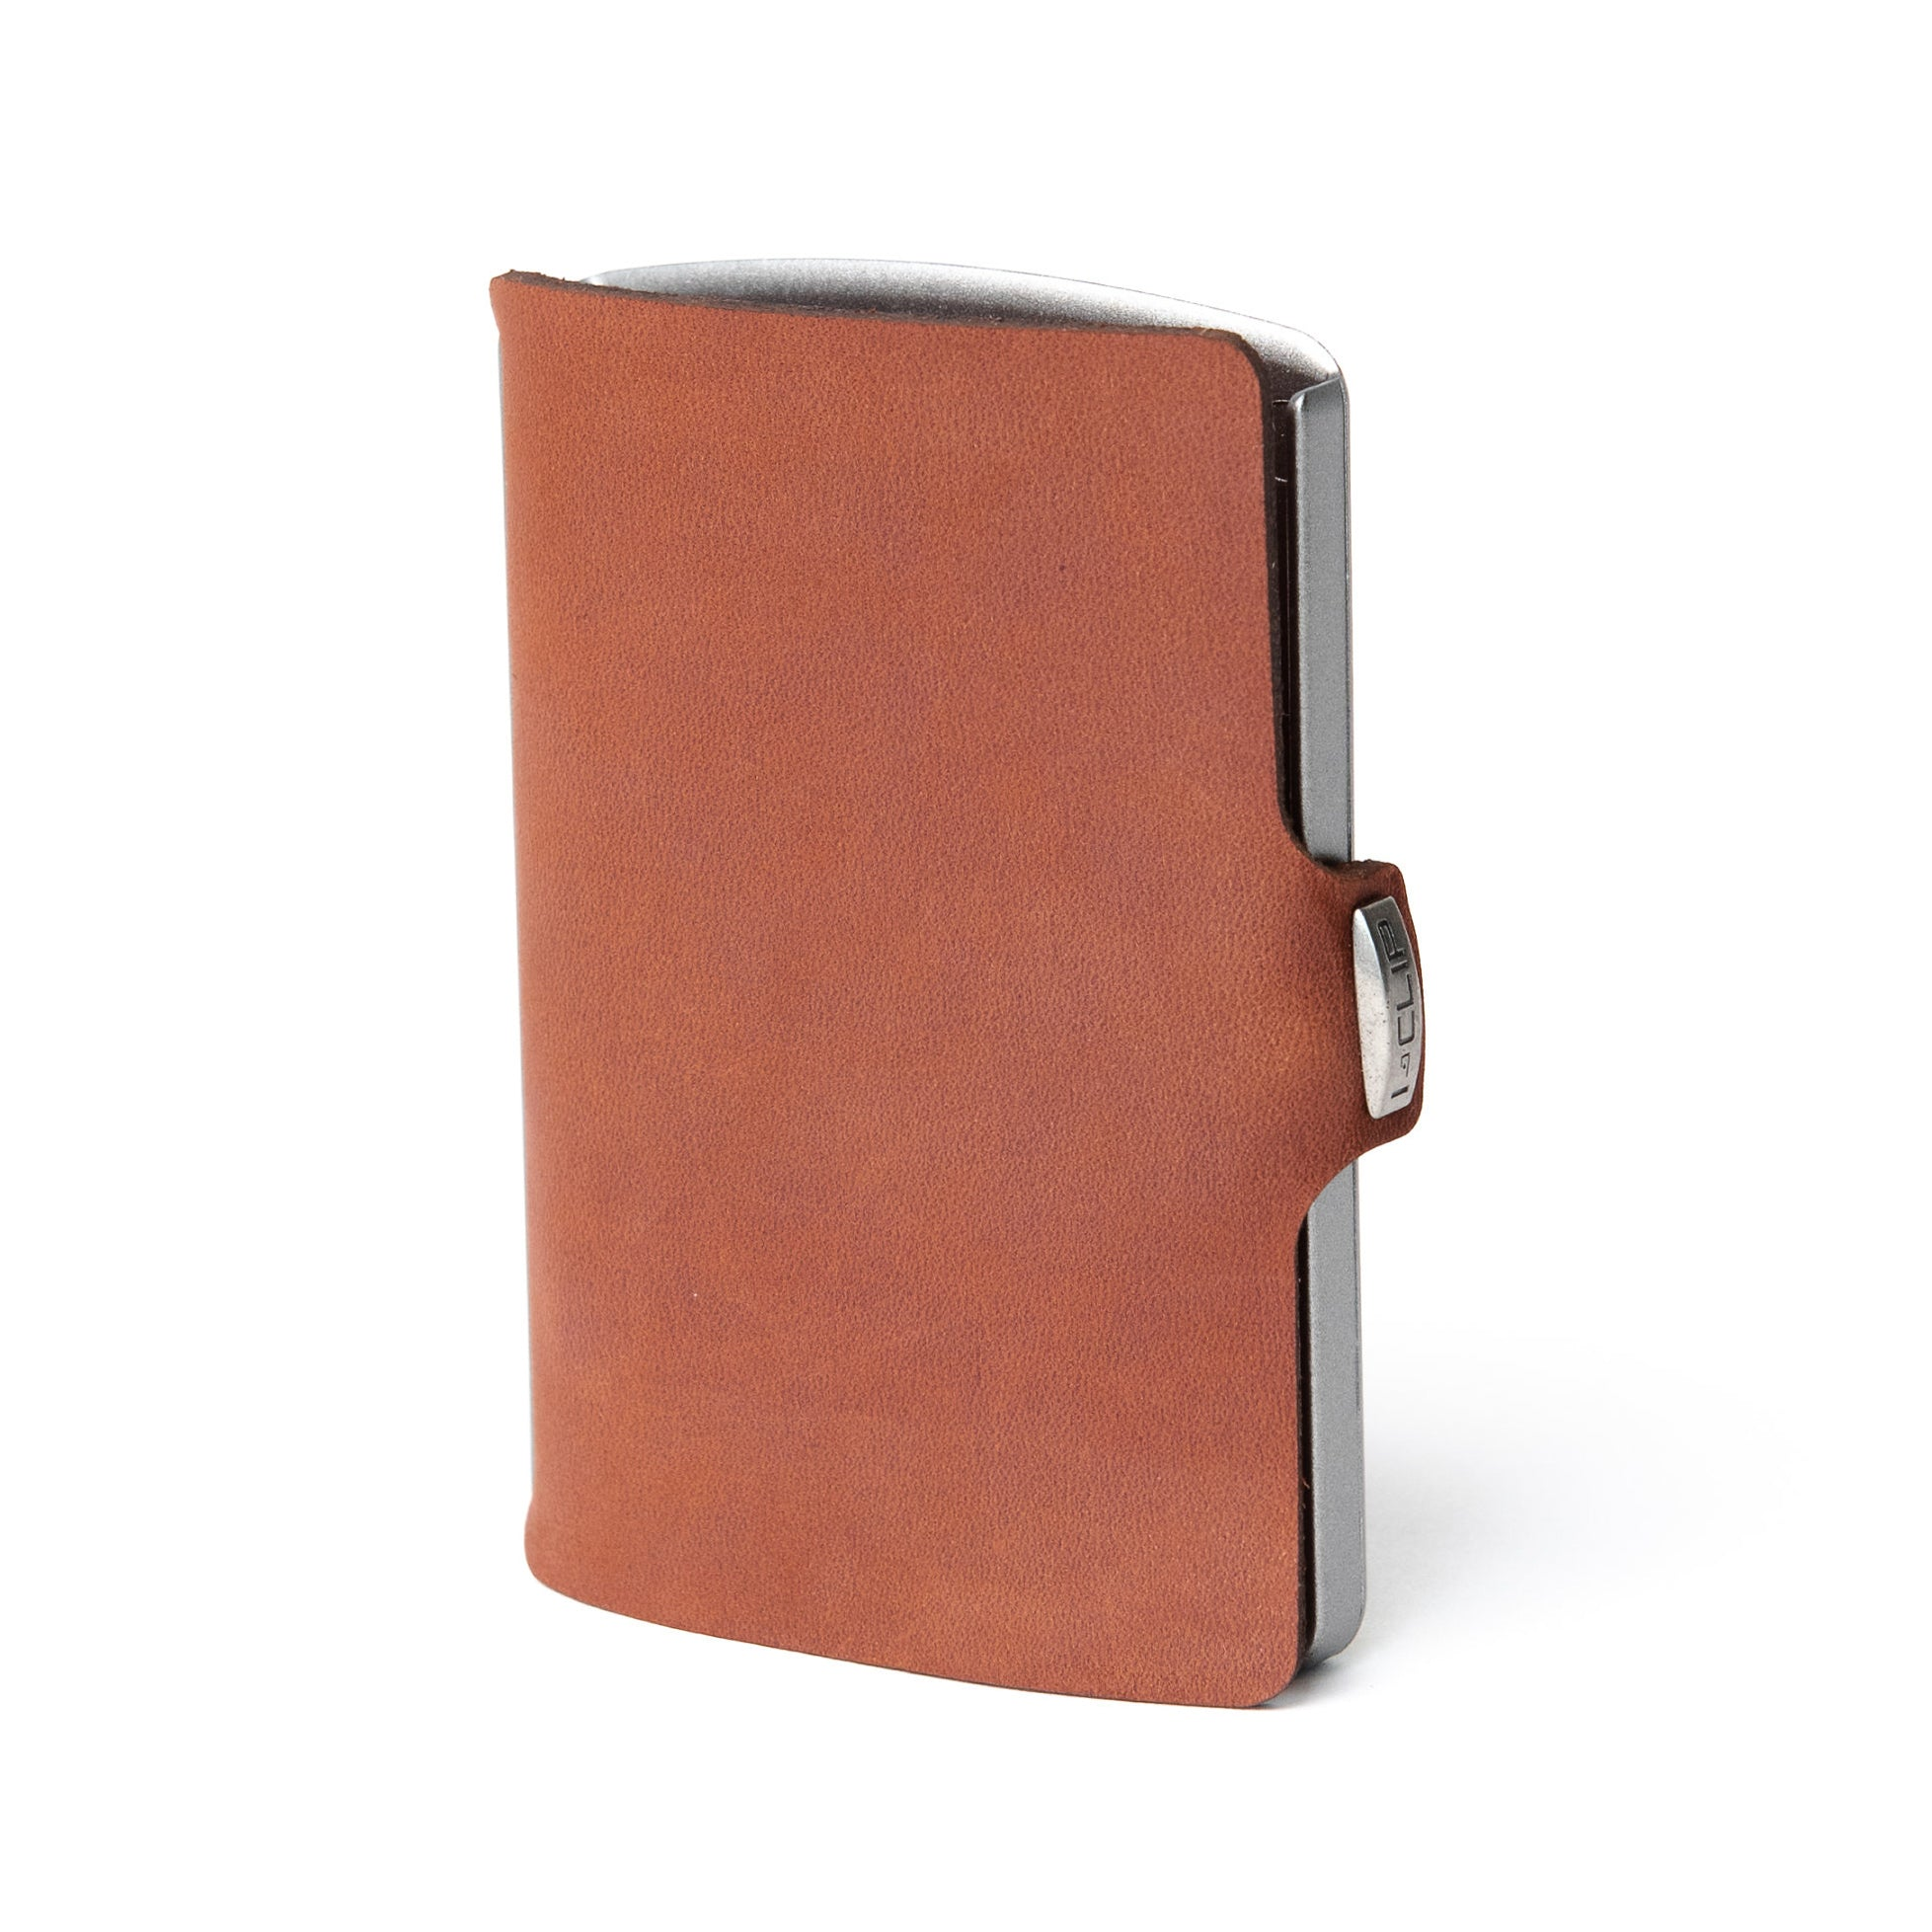 Soft Touch Leather - Oak / Metallic Gray Frame - I-CLIP